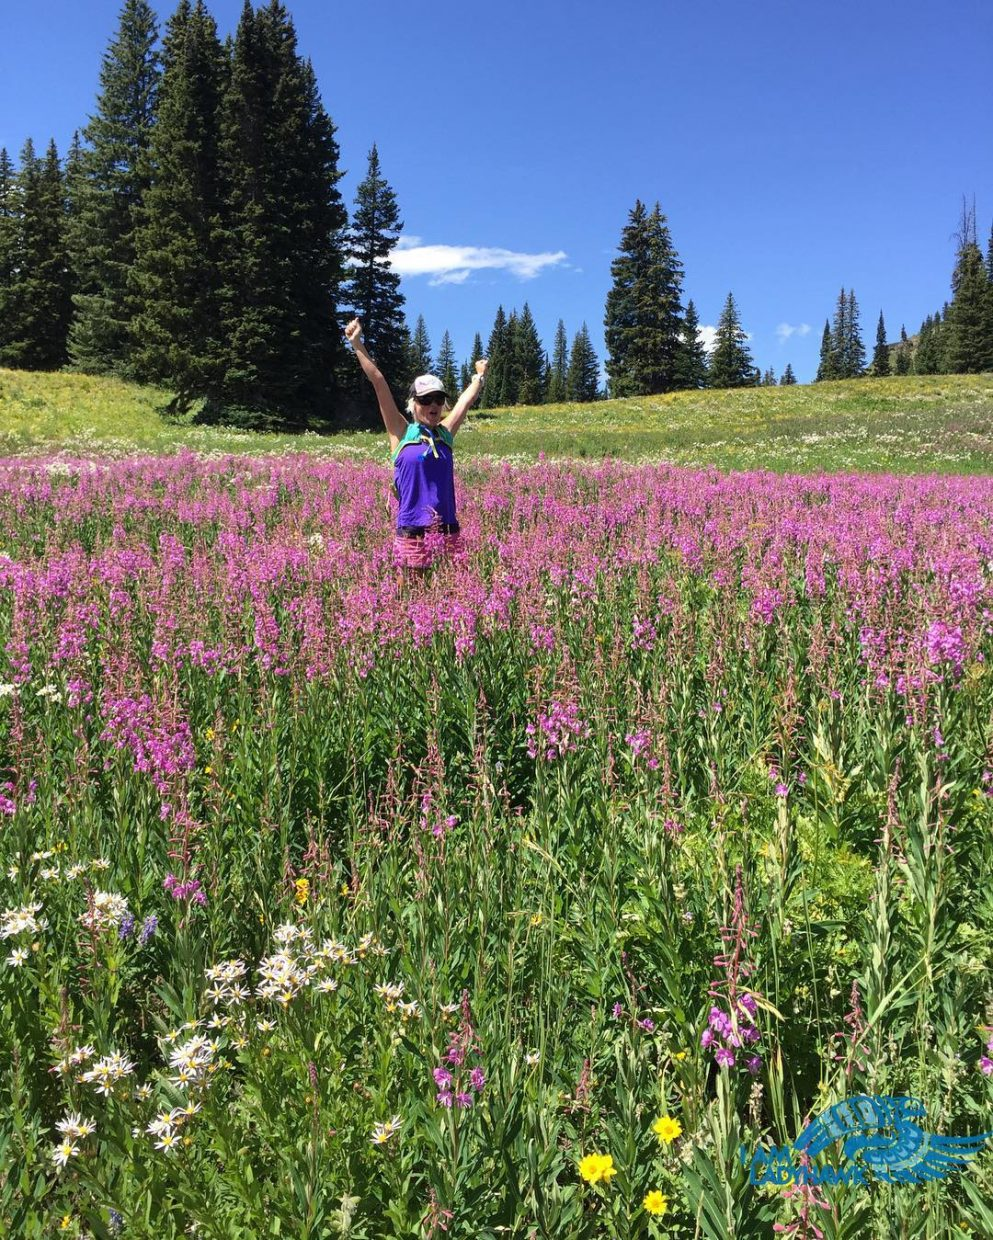 The wildflowers in Colorado are going off right now. @iam_ladyhawke